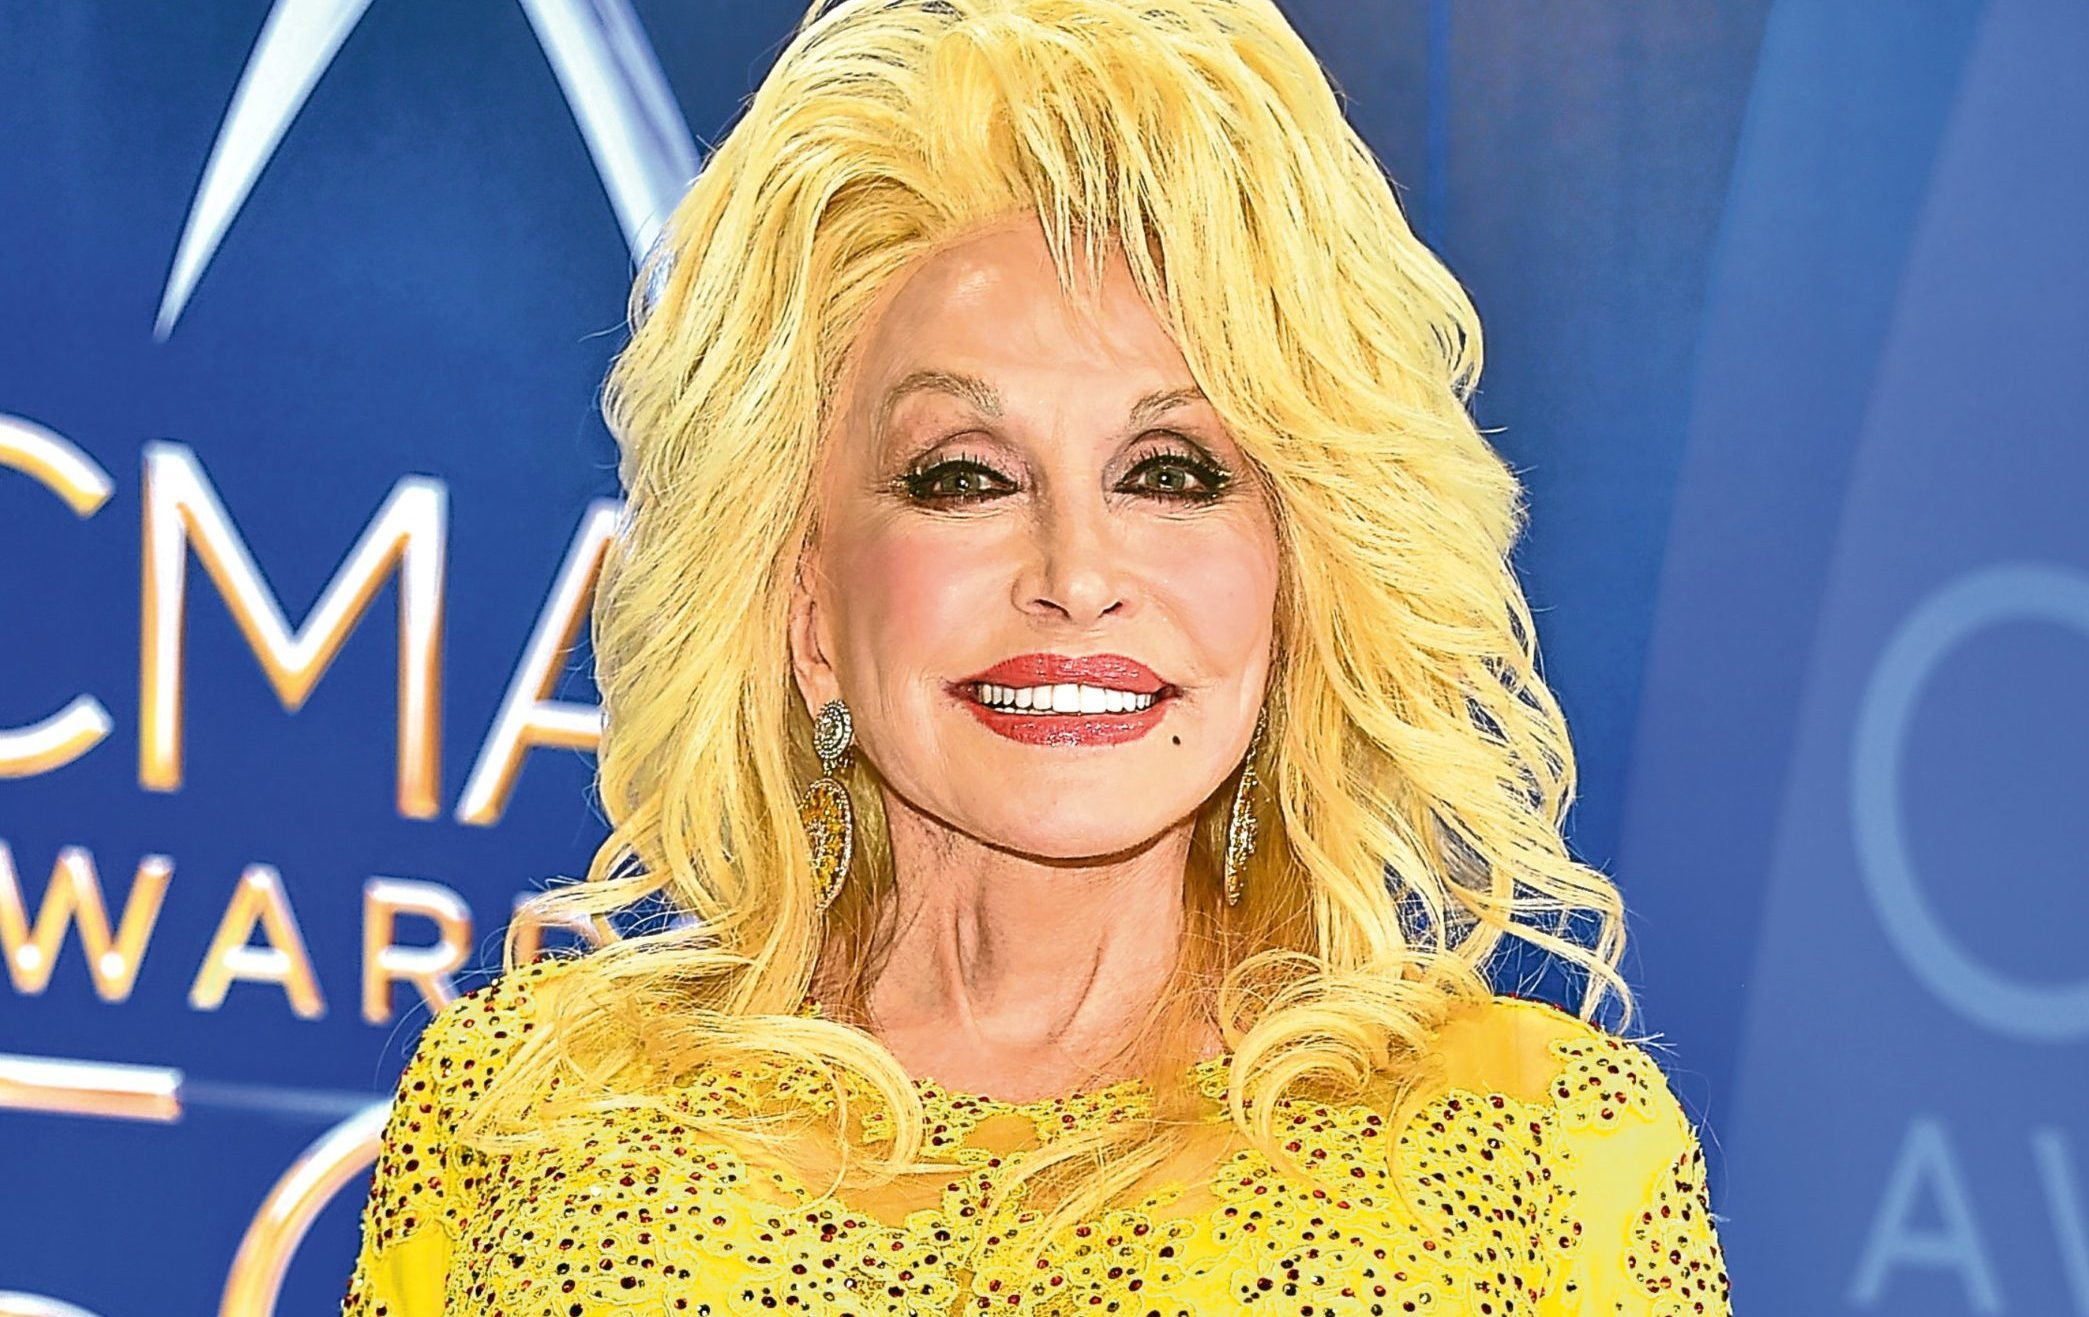 Dolly Parton receives the Willie Nelson Lifetime Achievement Award  (Michael Loccisano/Getty Images)